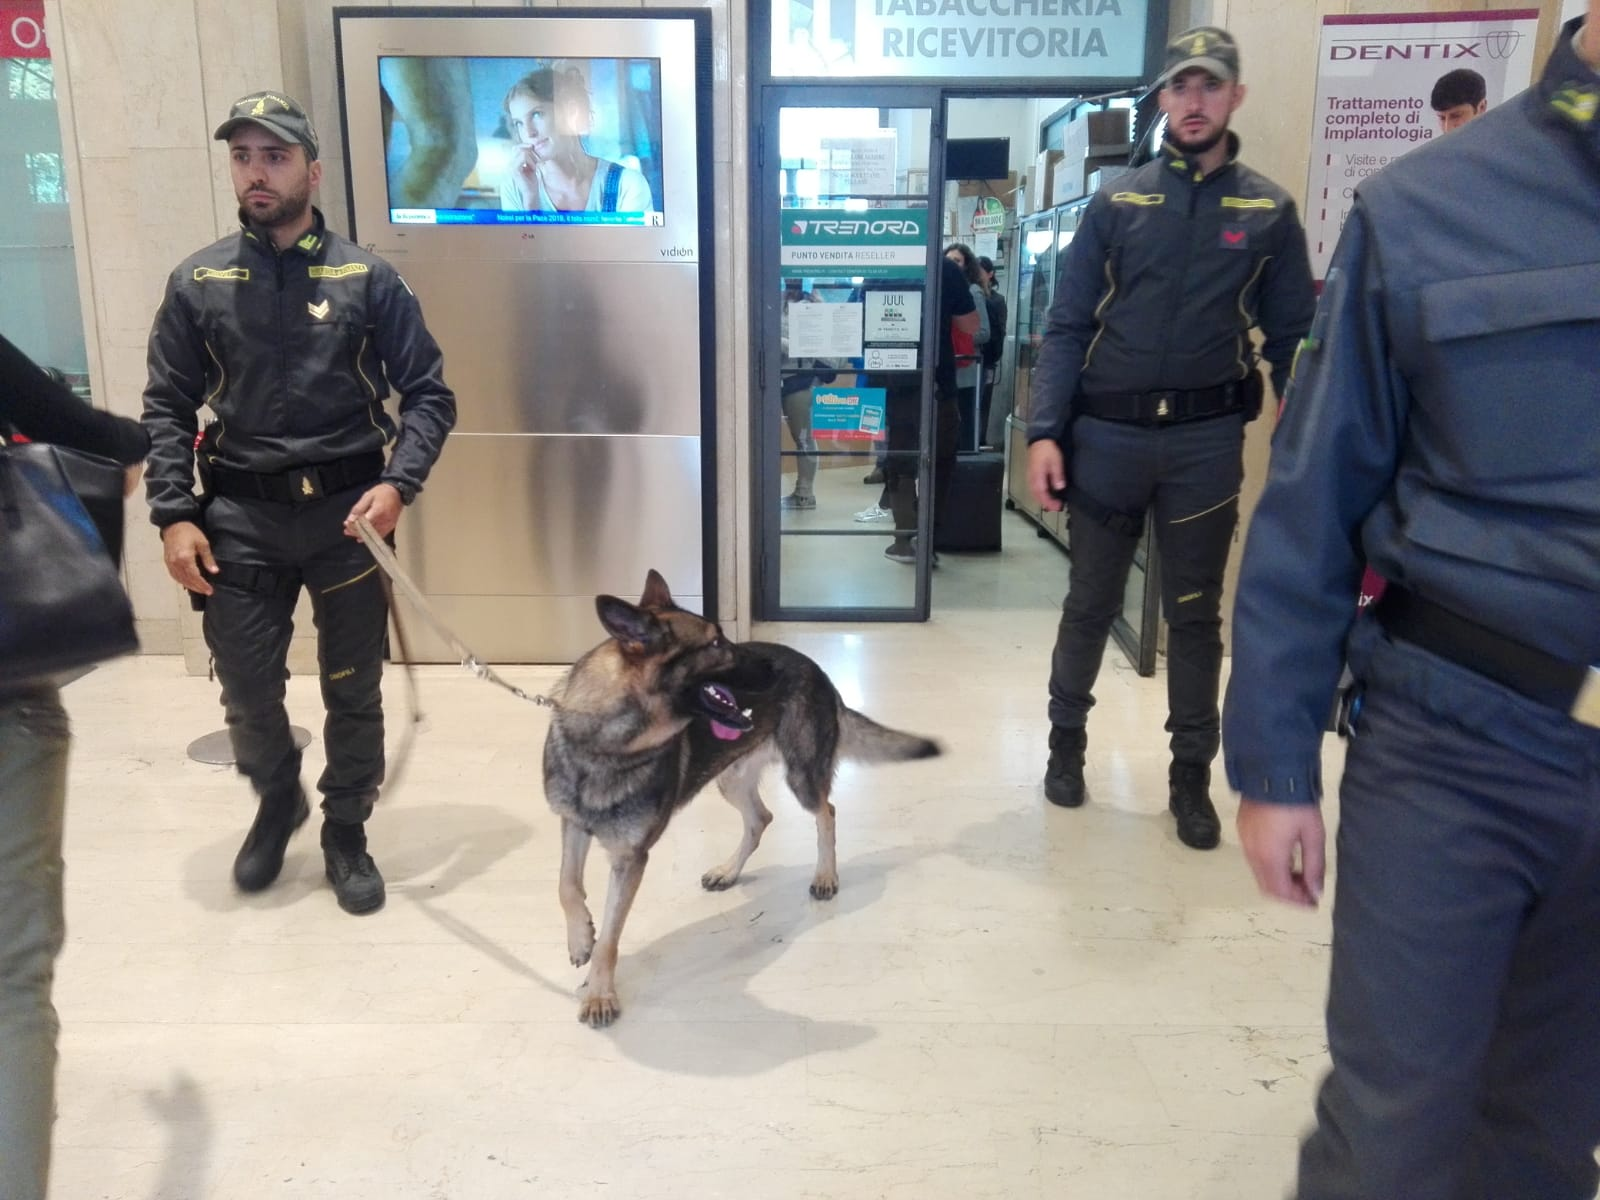 Guardia di Finanza Monza, controlli antidroga in città VIDEO